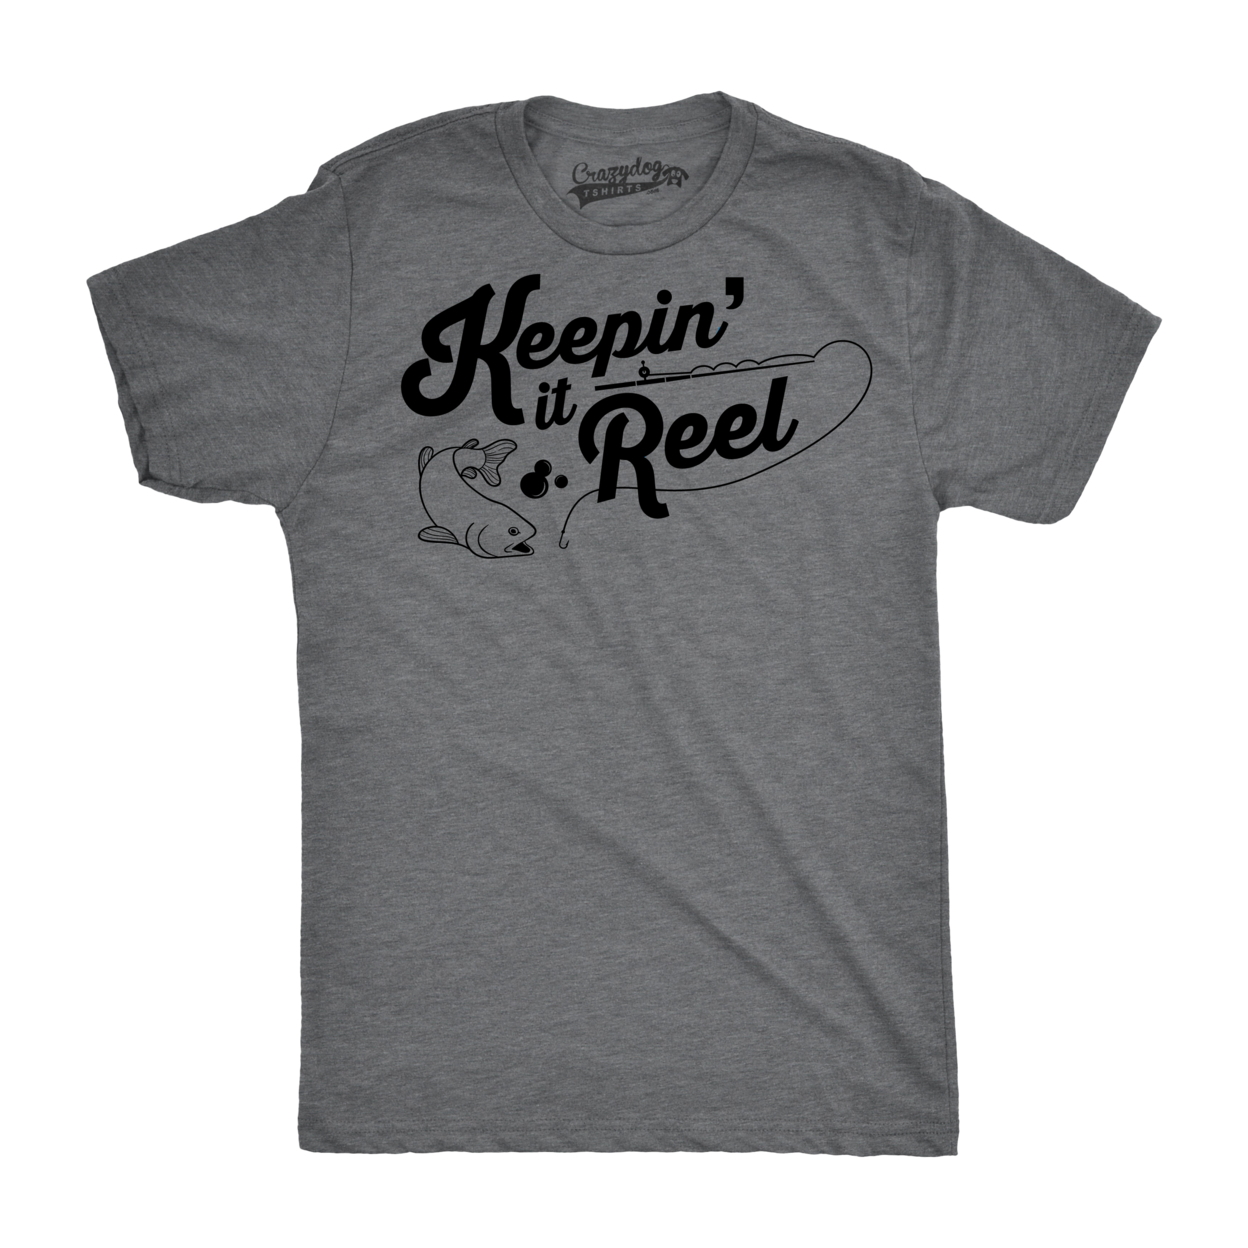 Mens Keepin It Reel Tshirt Funny Cool Fishing Bass Outdoors Sporting Tee